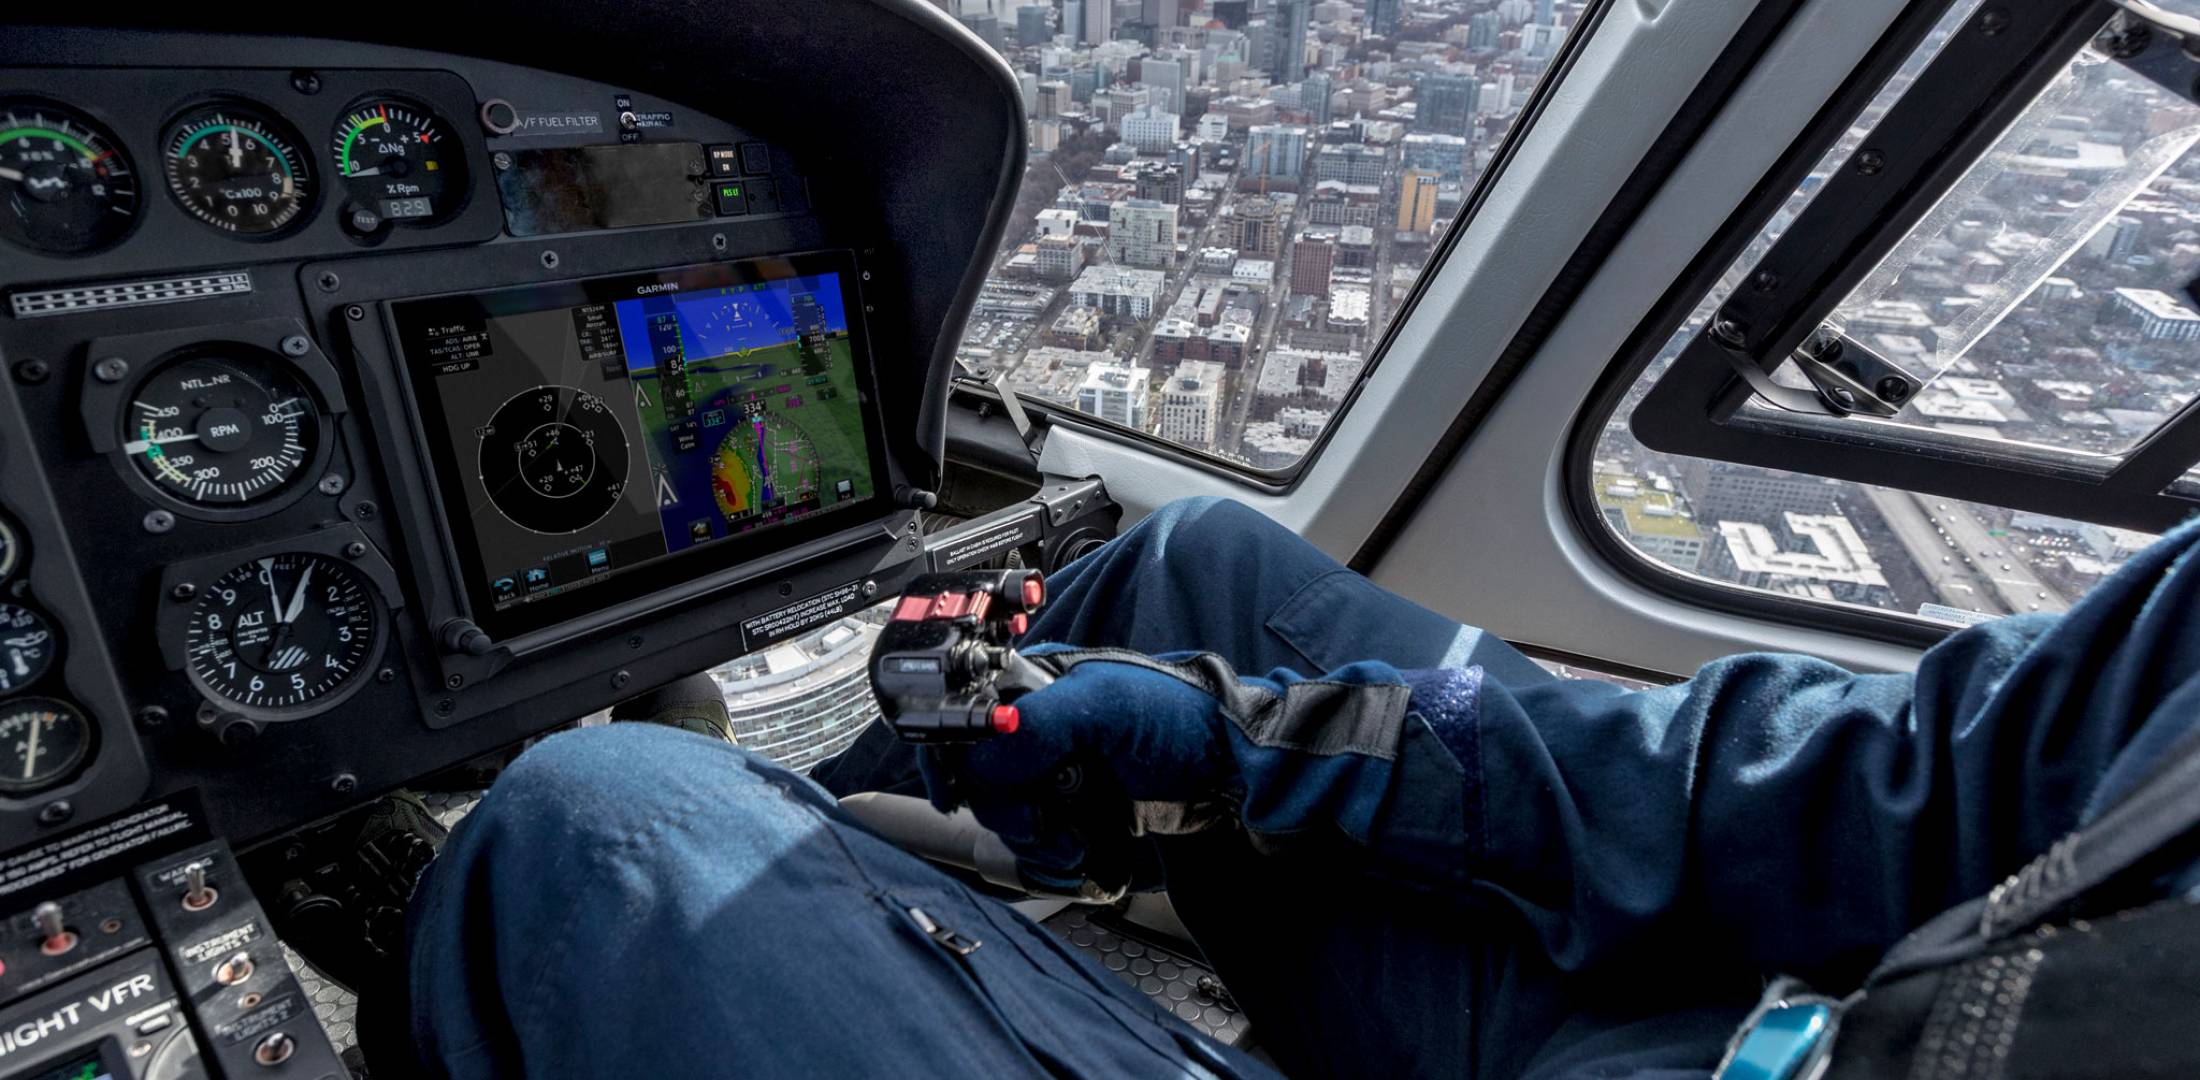 Helicopter Flight Control System Is a First for Garmin | General